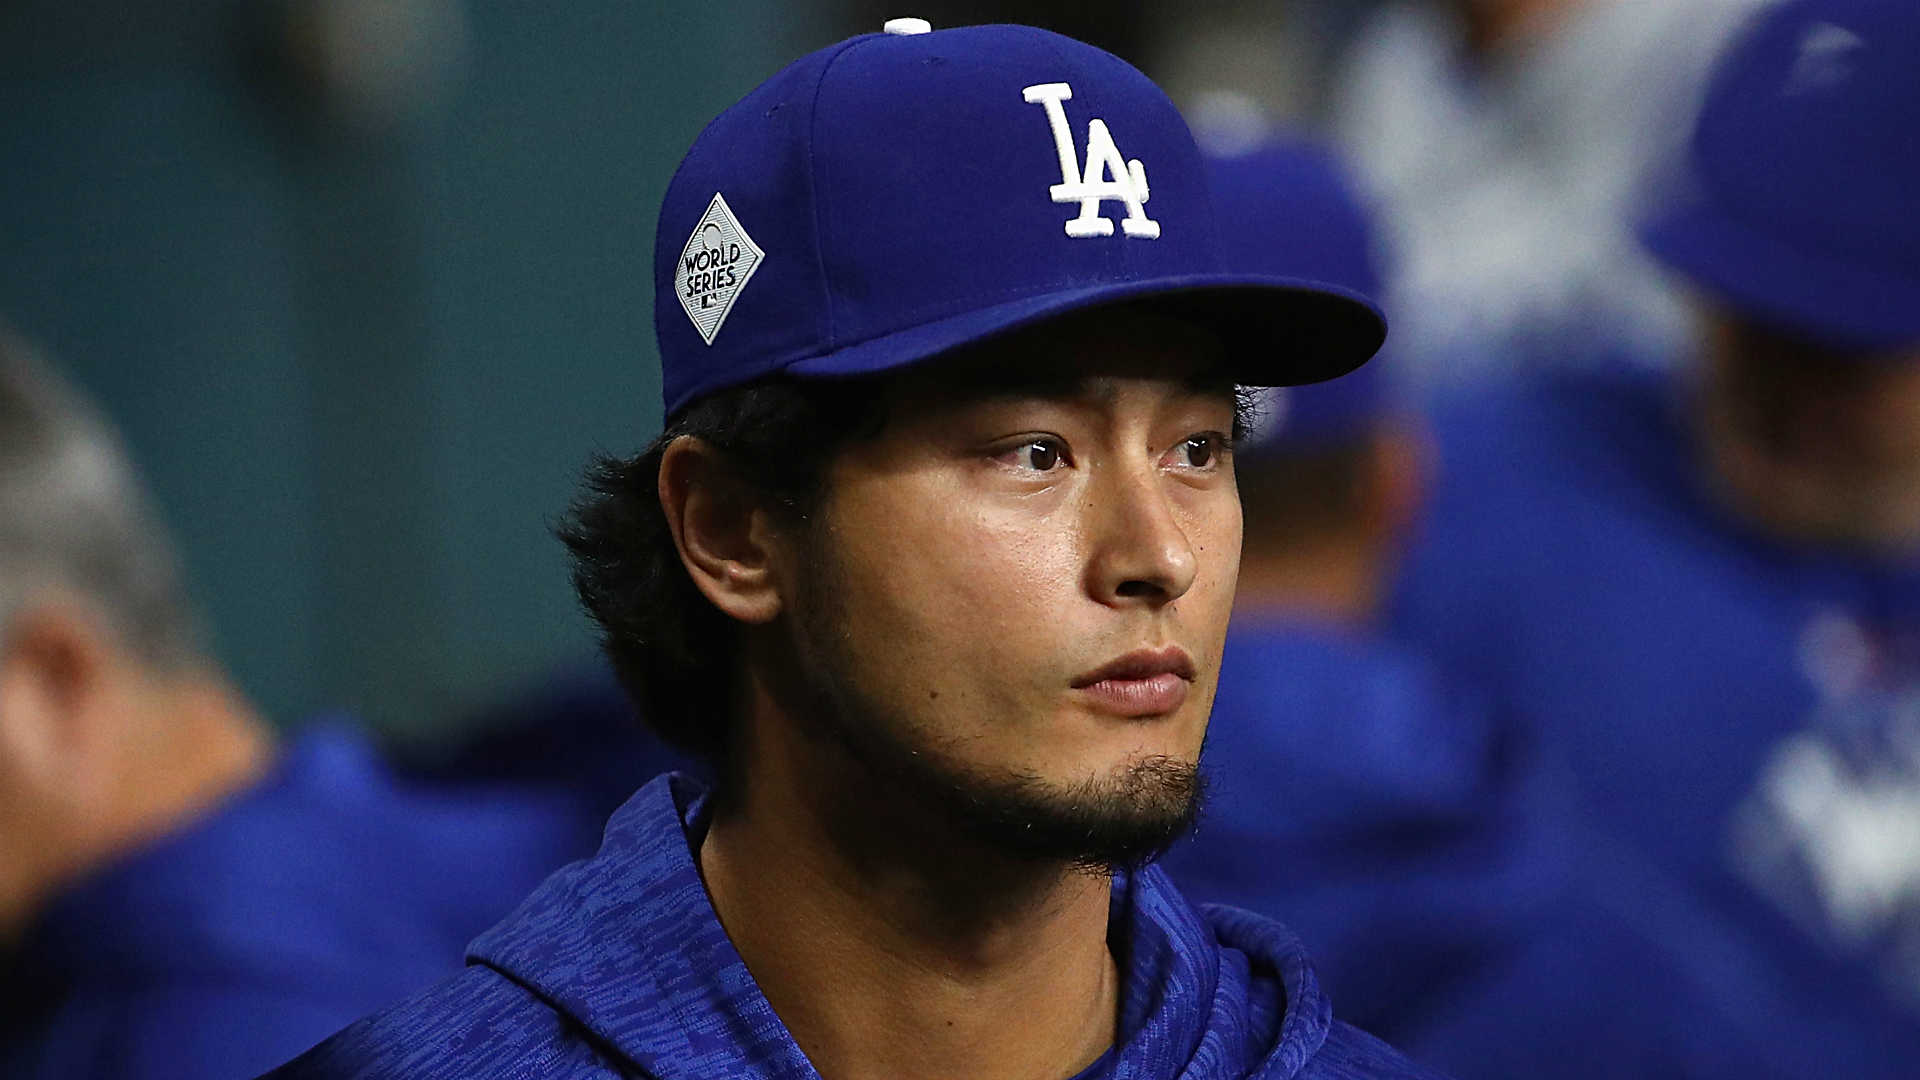 Yu Darvish turned down Dodgers to join Cubs